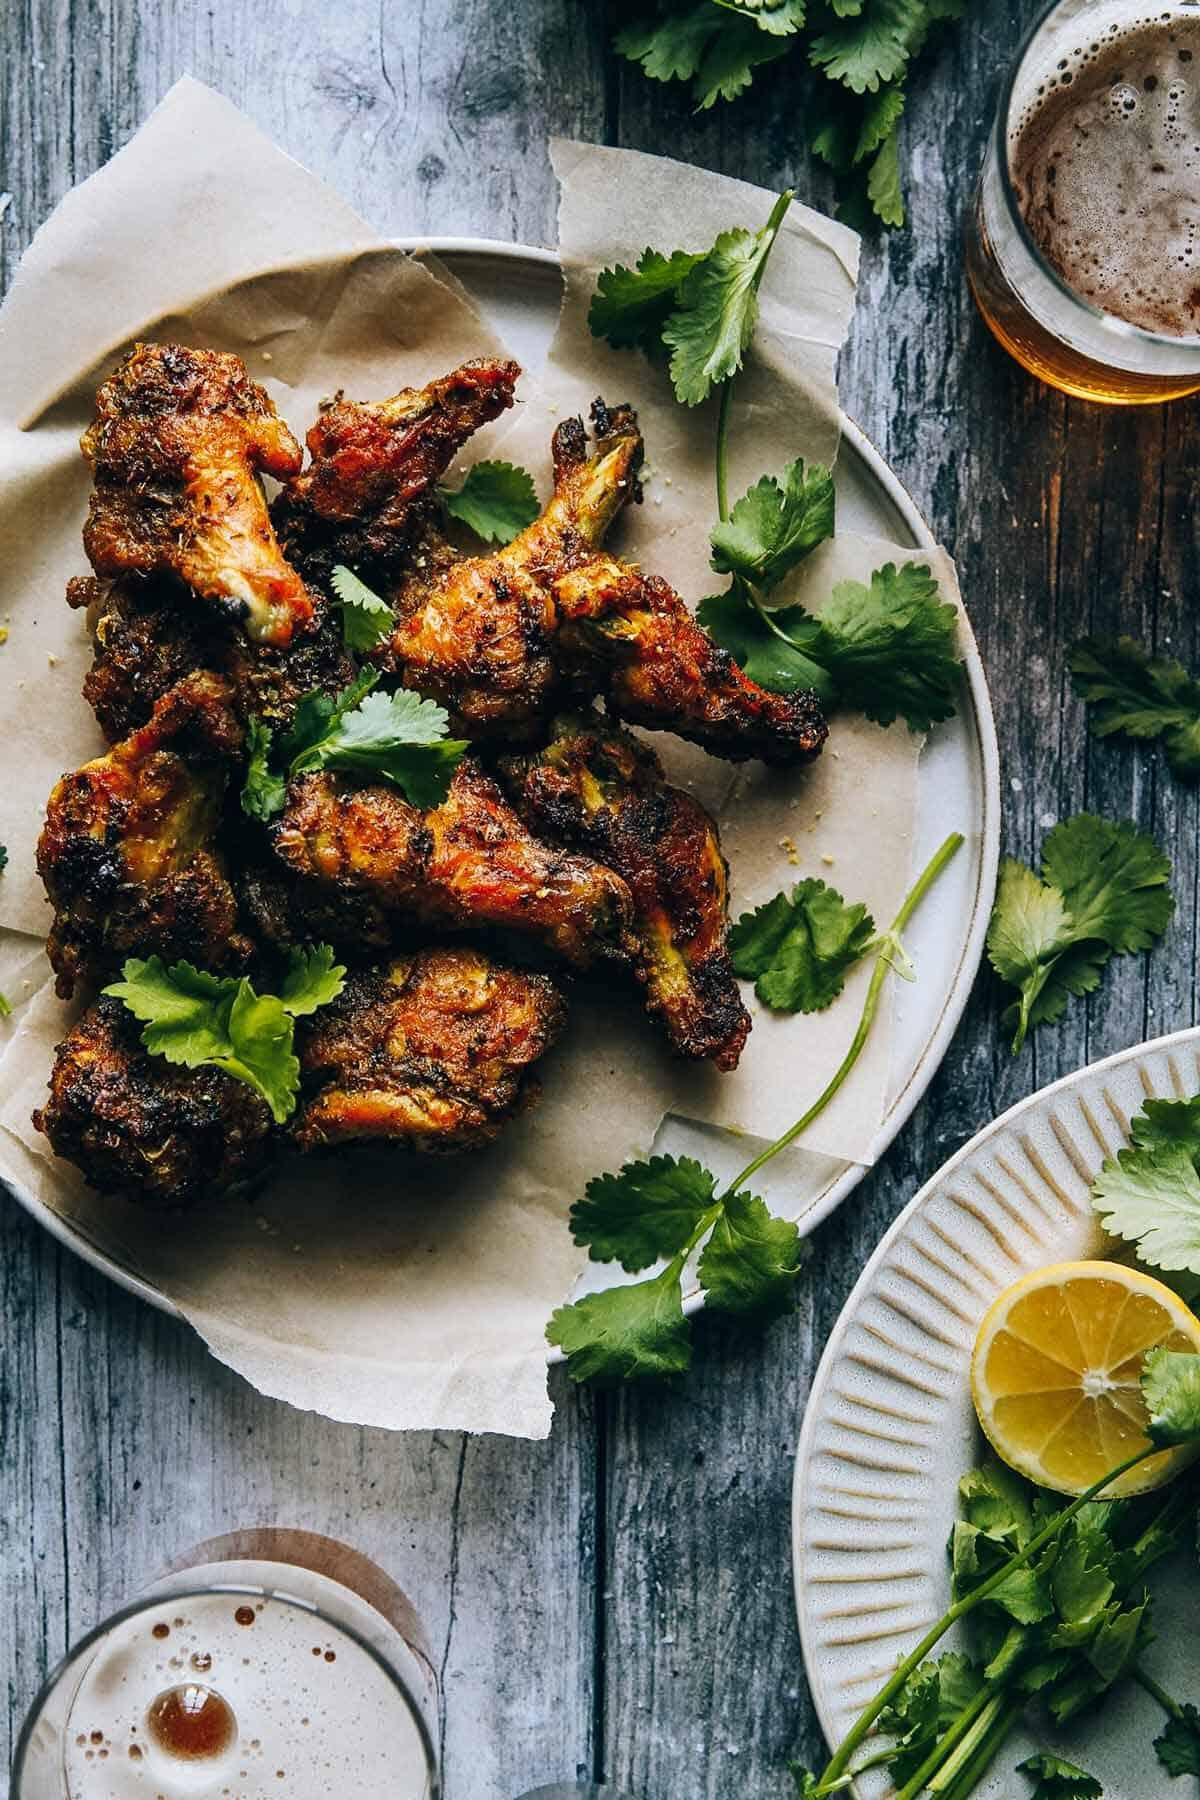 A flat lay of chicken wings on a plate sitting on a table with beer glasses.